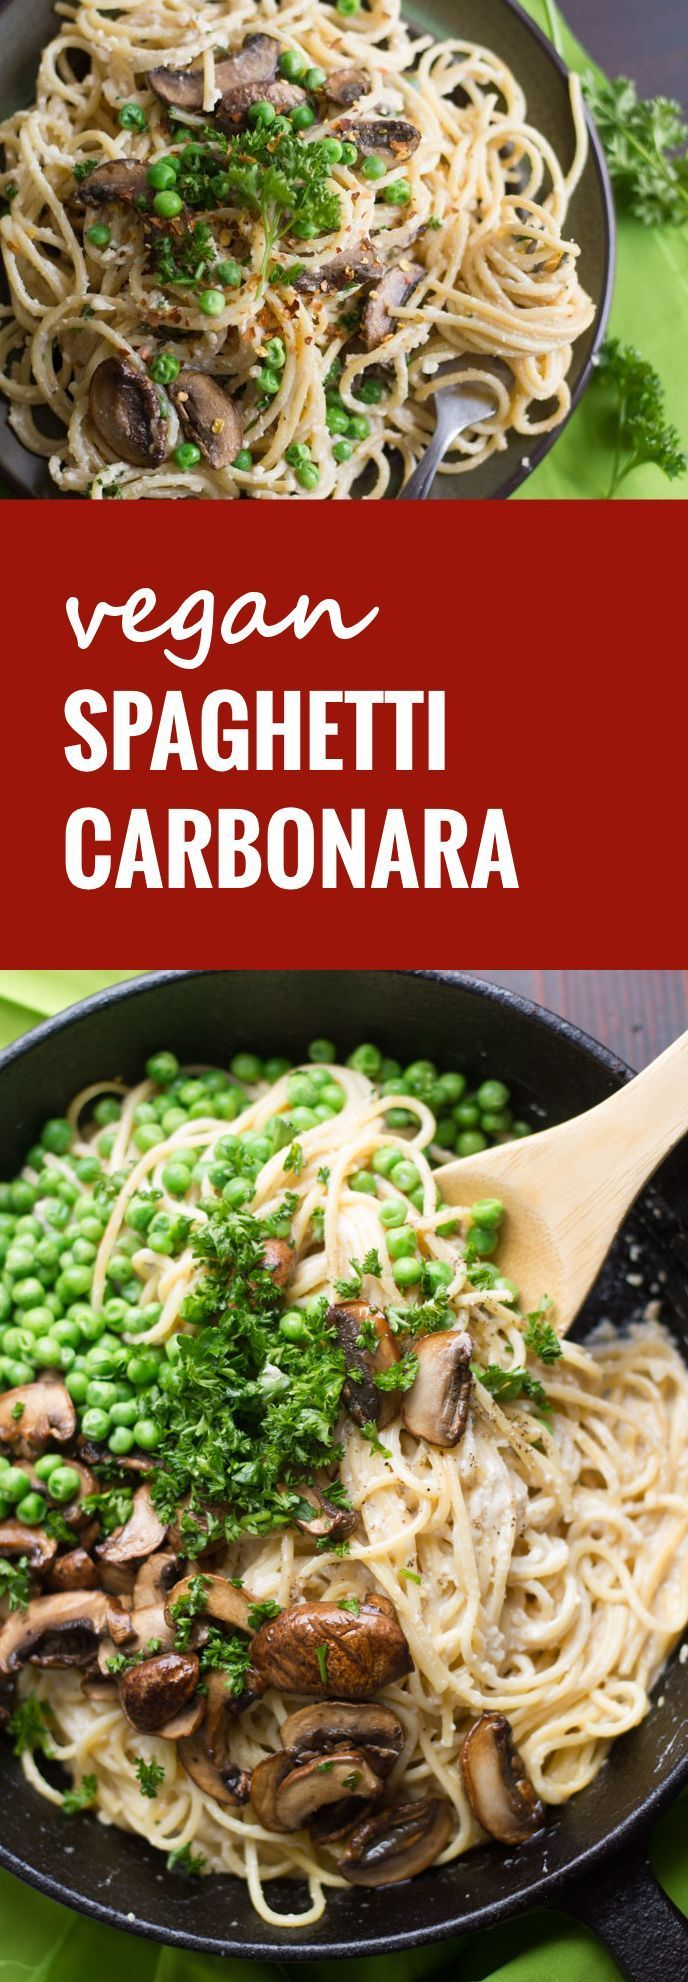 Smoky marinated cremini mushrooms and peas are tossed with spaghetti in a silky tofu and cashew sauce to create this decadently delicious vegan carbonara.